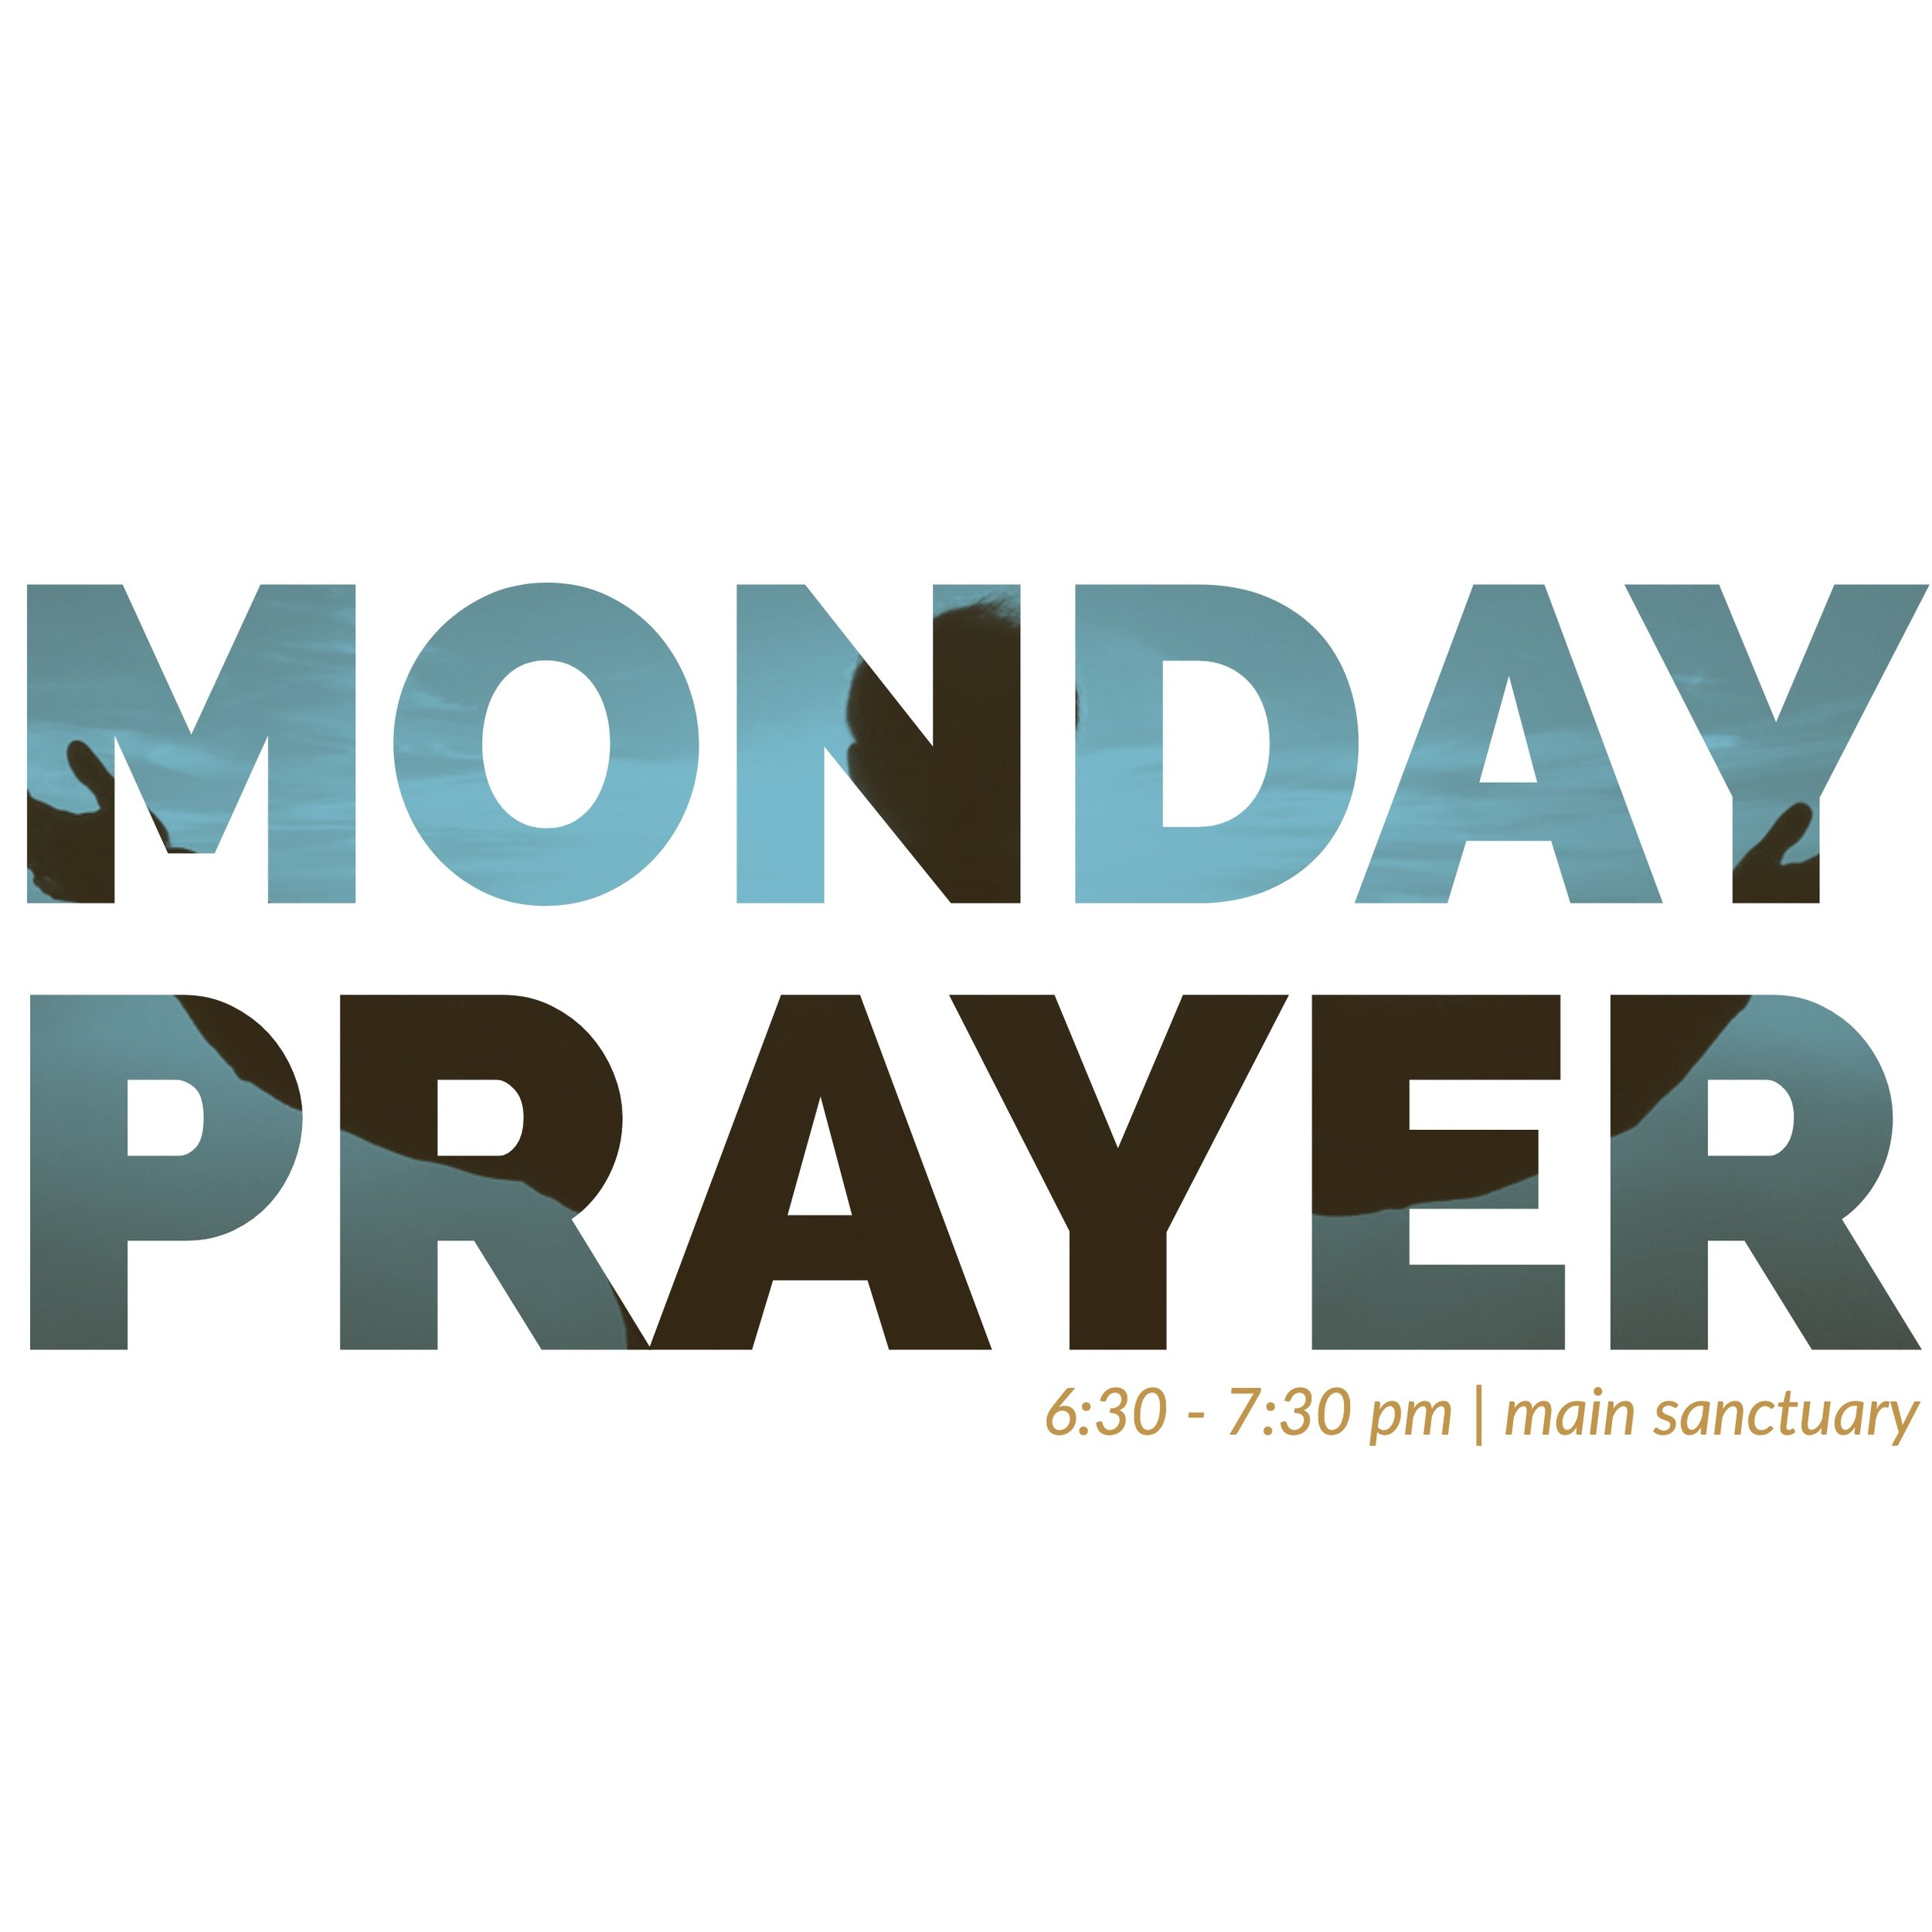 Monday Night Prayer at The Anchor Church.  Join us in corporate prayer every week in the main sanctuary from 6:30 to 7:30pm.